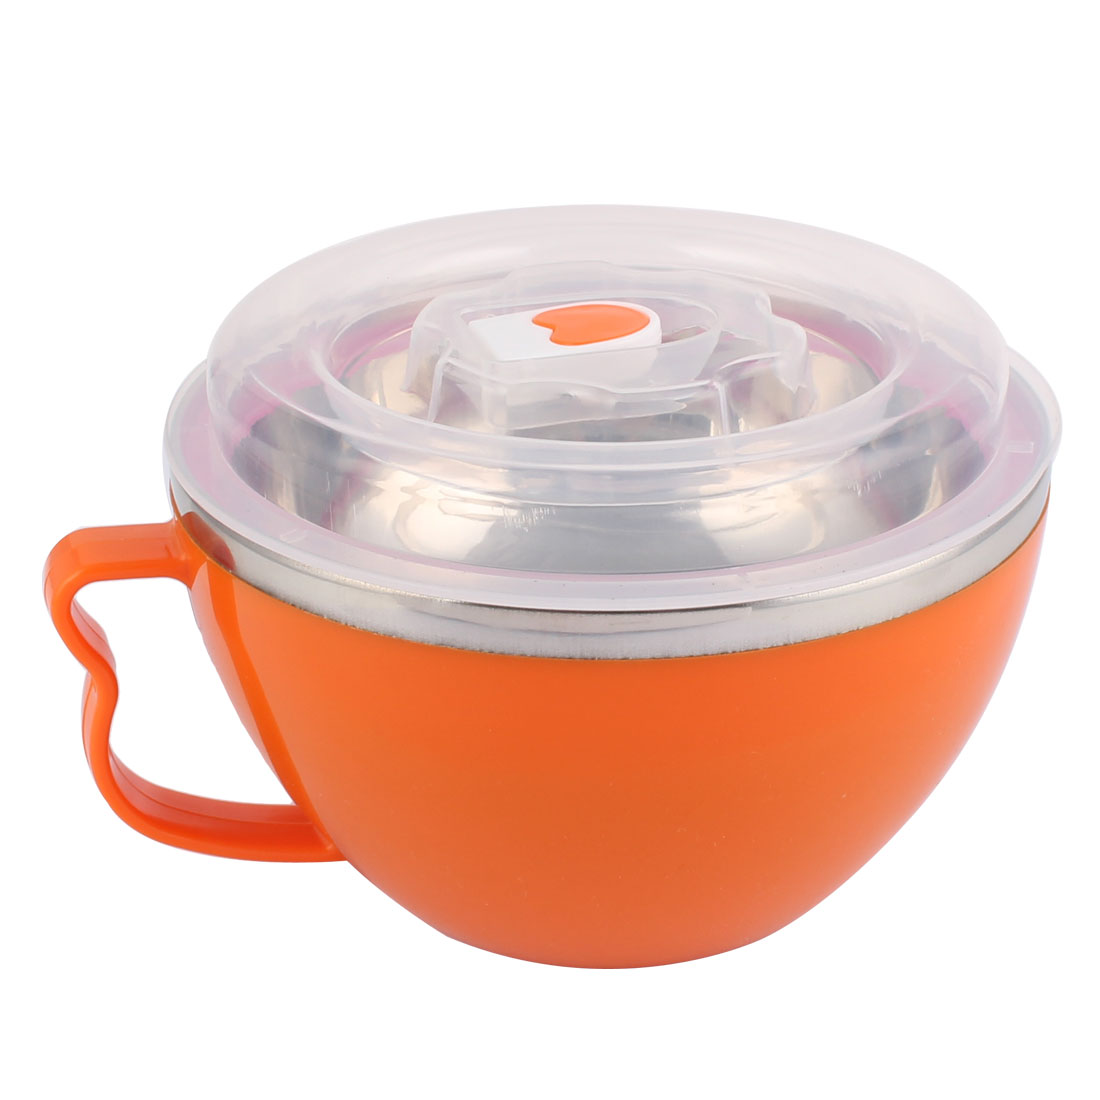 Household Plastic Handle Stainless Steel Noodle Rice Lunch Box Bowl Orange w Cover